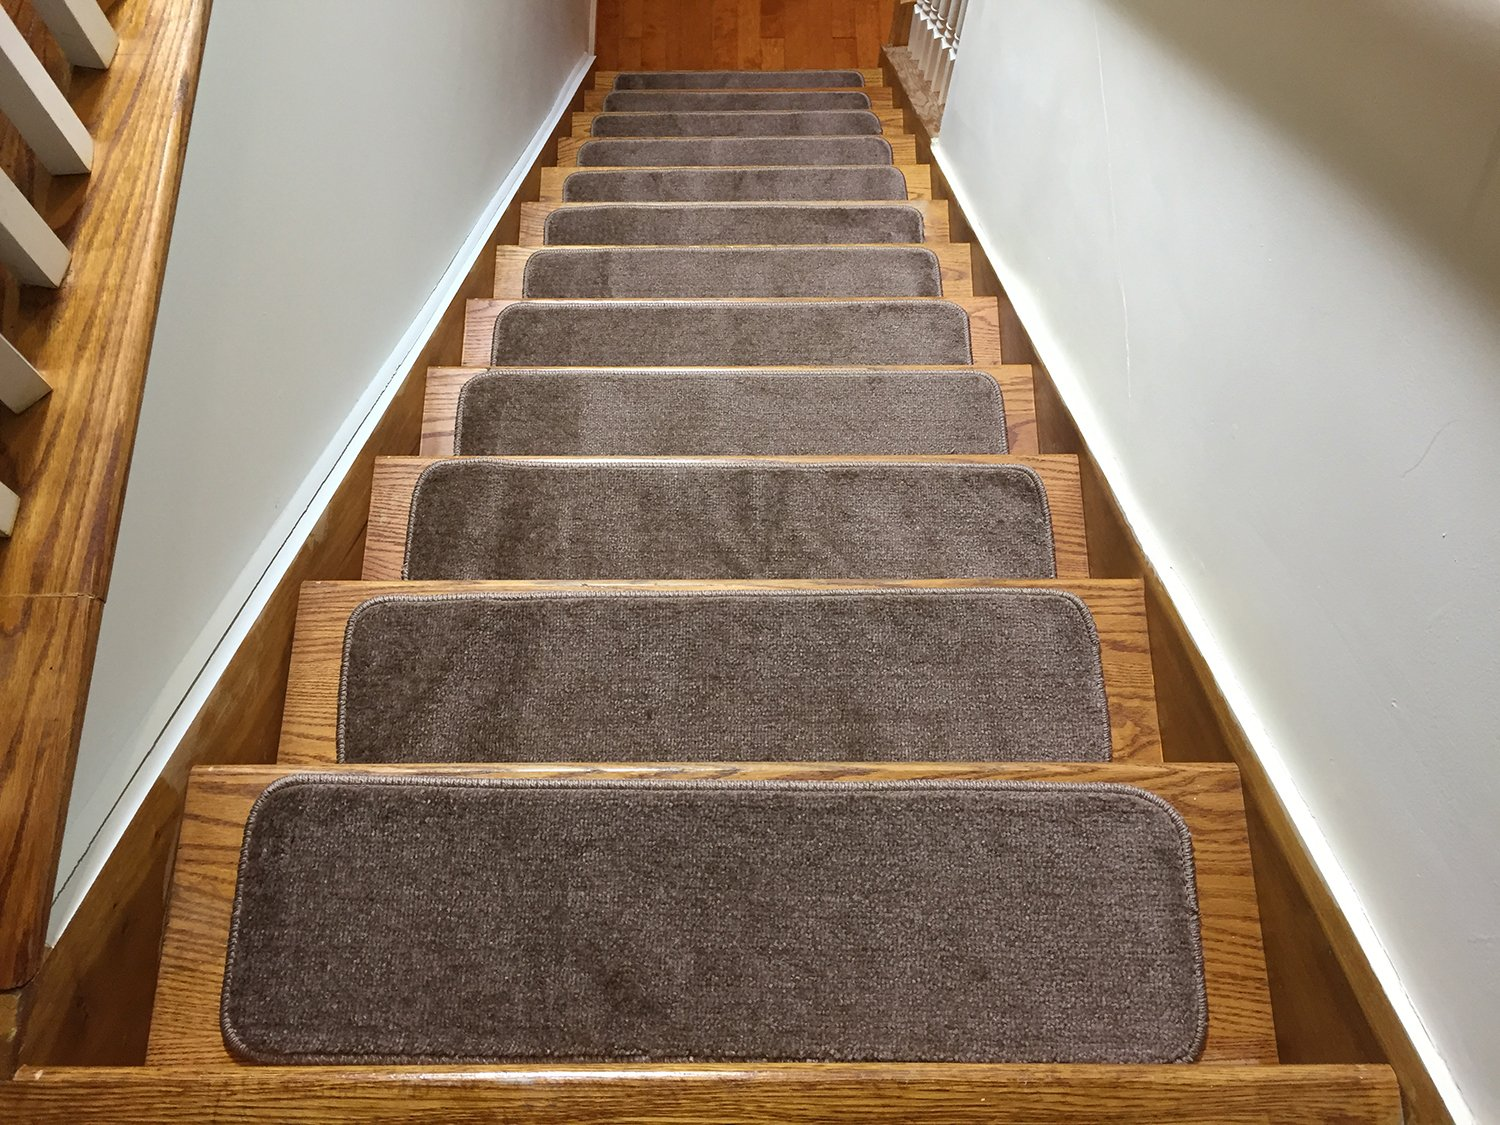 Get Quotations Euro Collection Stair Treads Indoor Skid Slip Resistant Carpet Tread 8 ½ Inch X